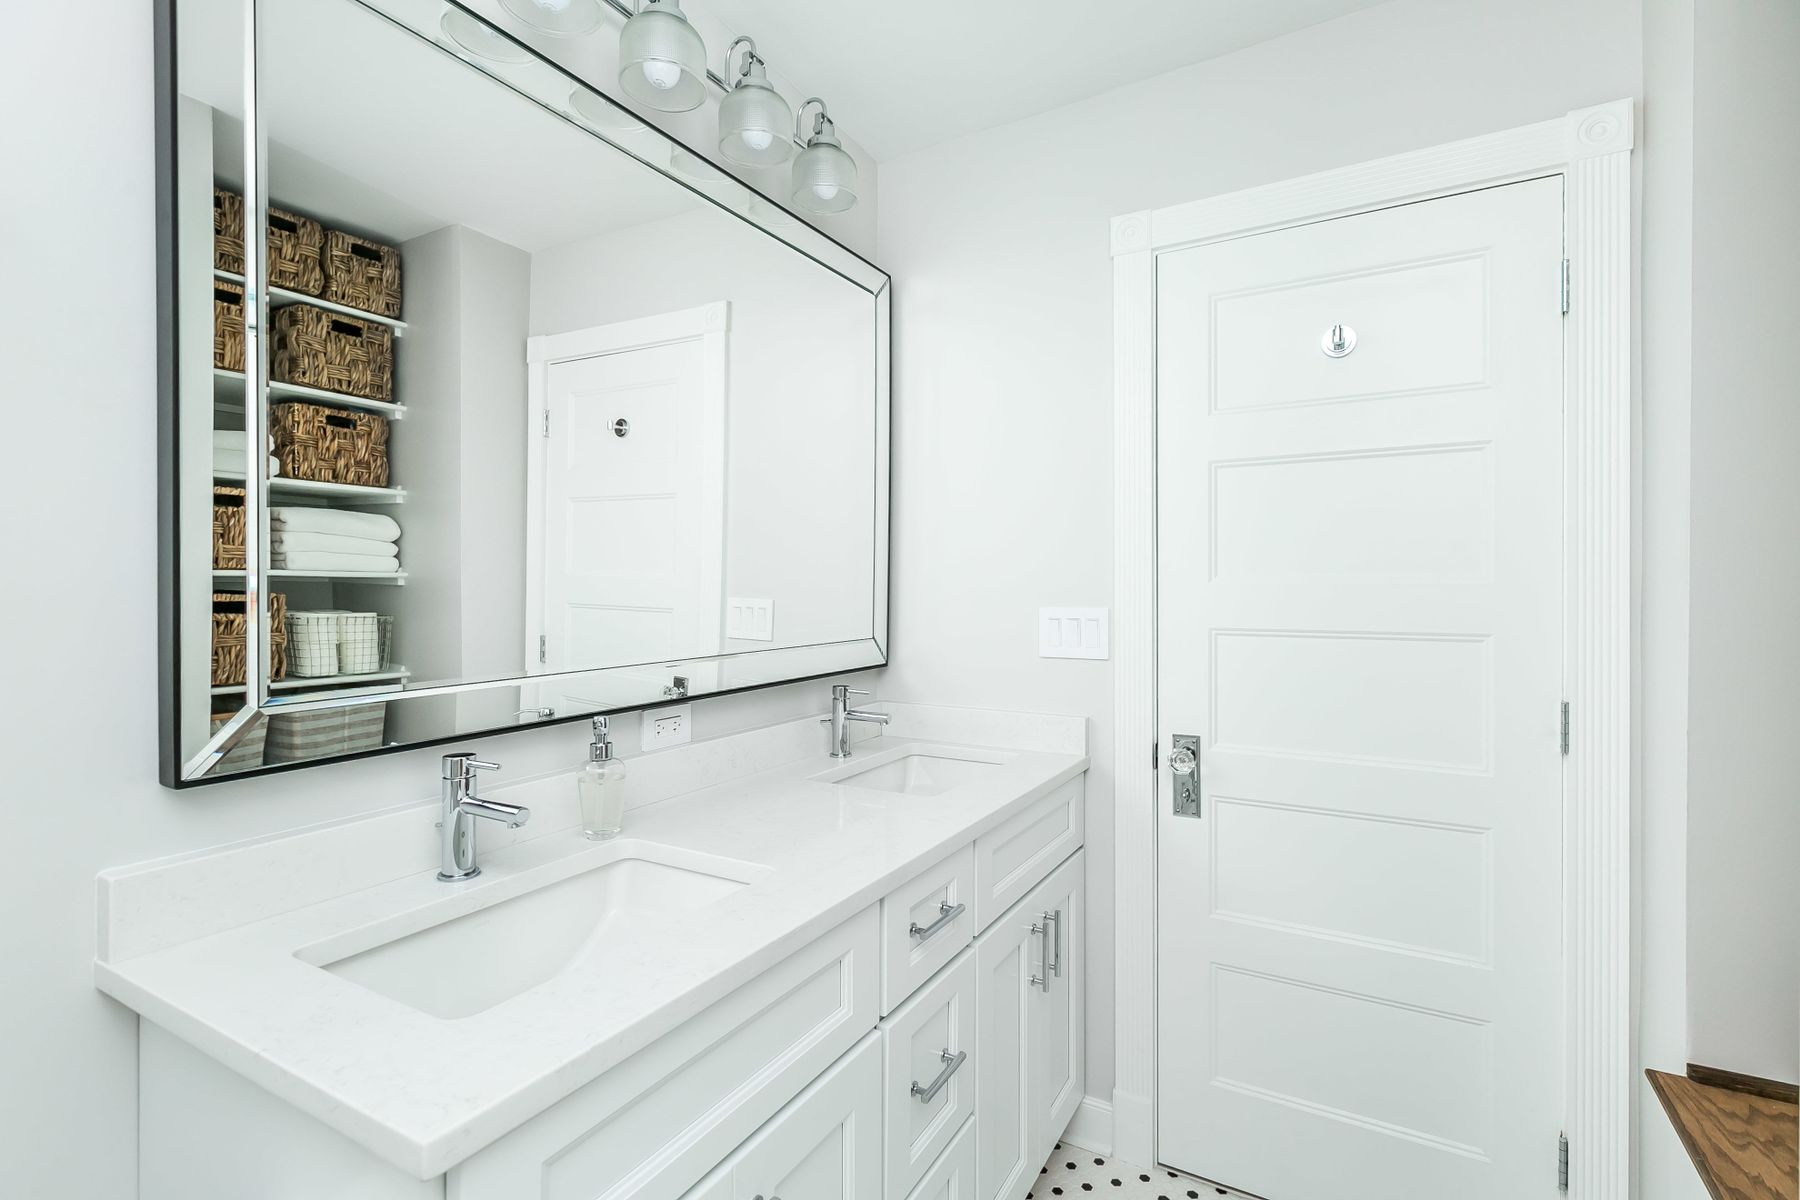 Shared bathroom in Rodgers Forge renovation